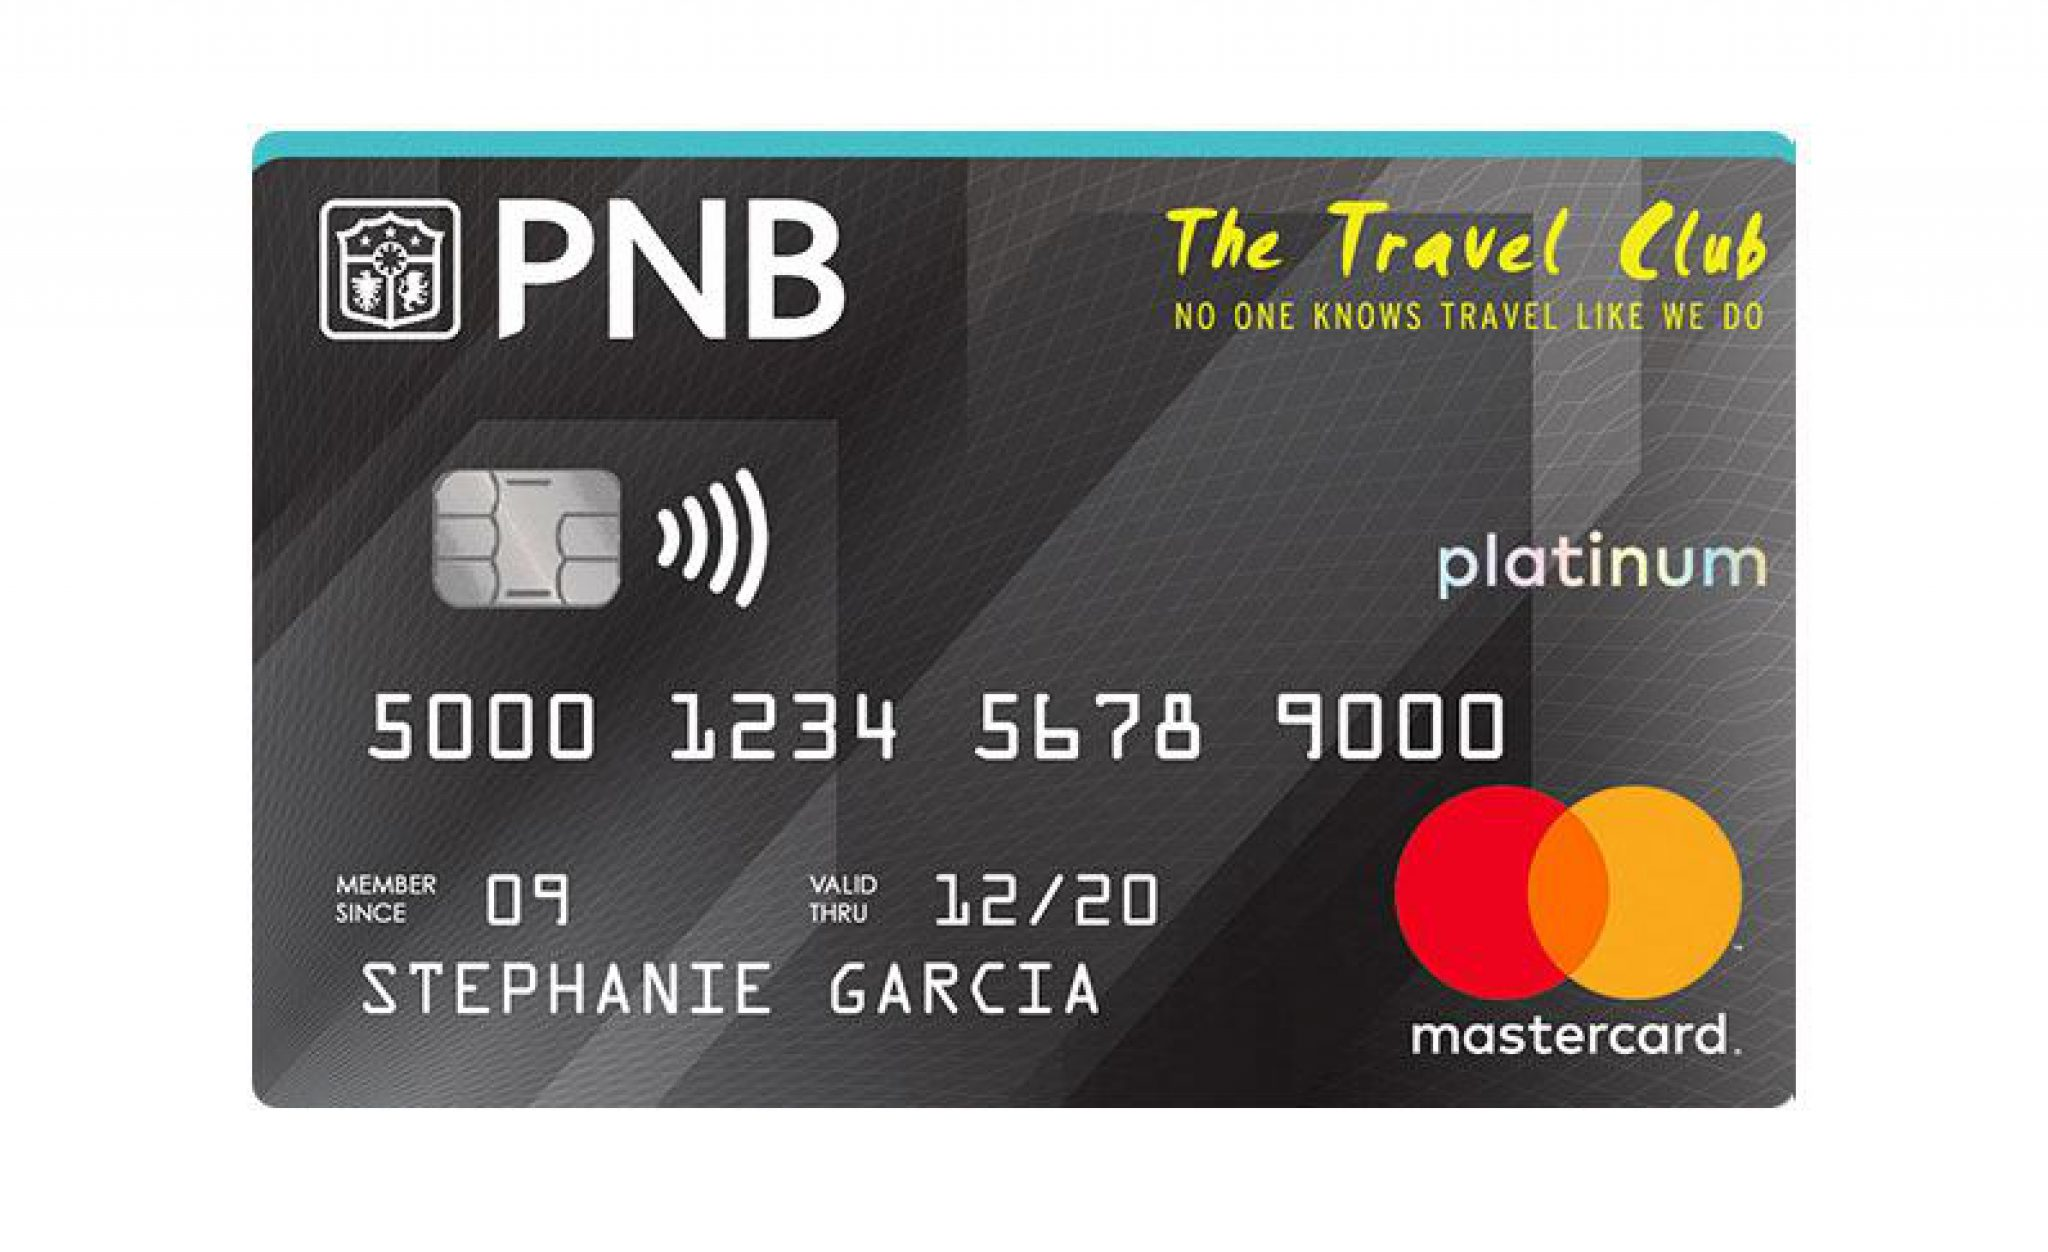 PNB Travel Club Platinum Mastercard